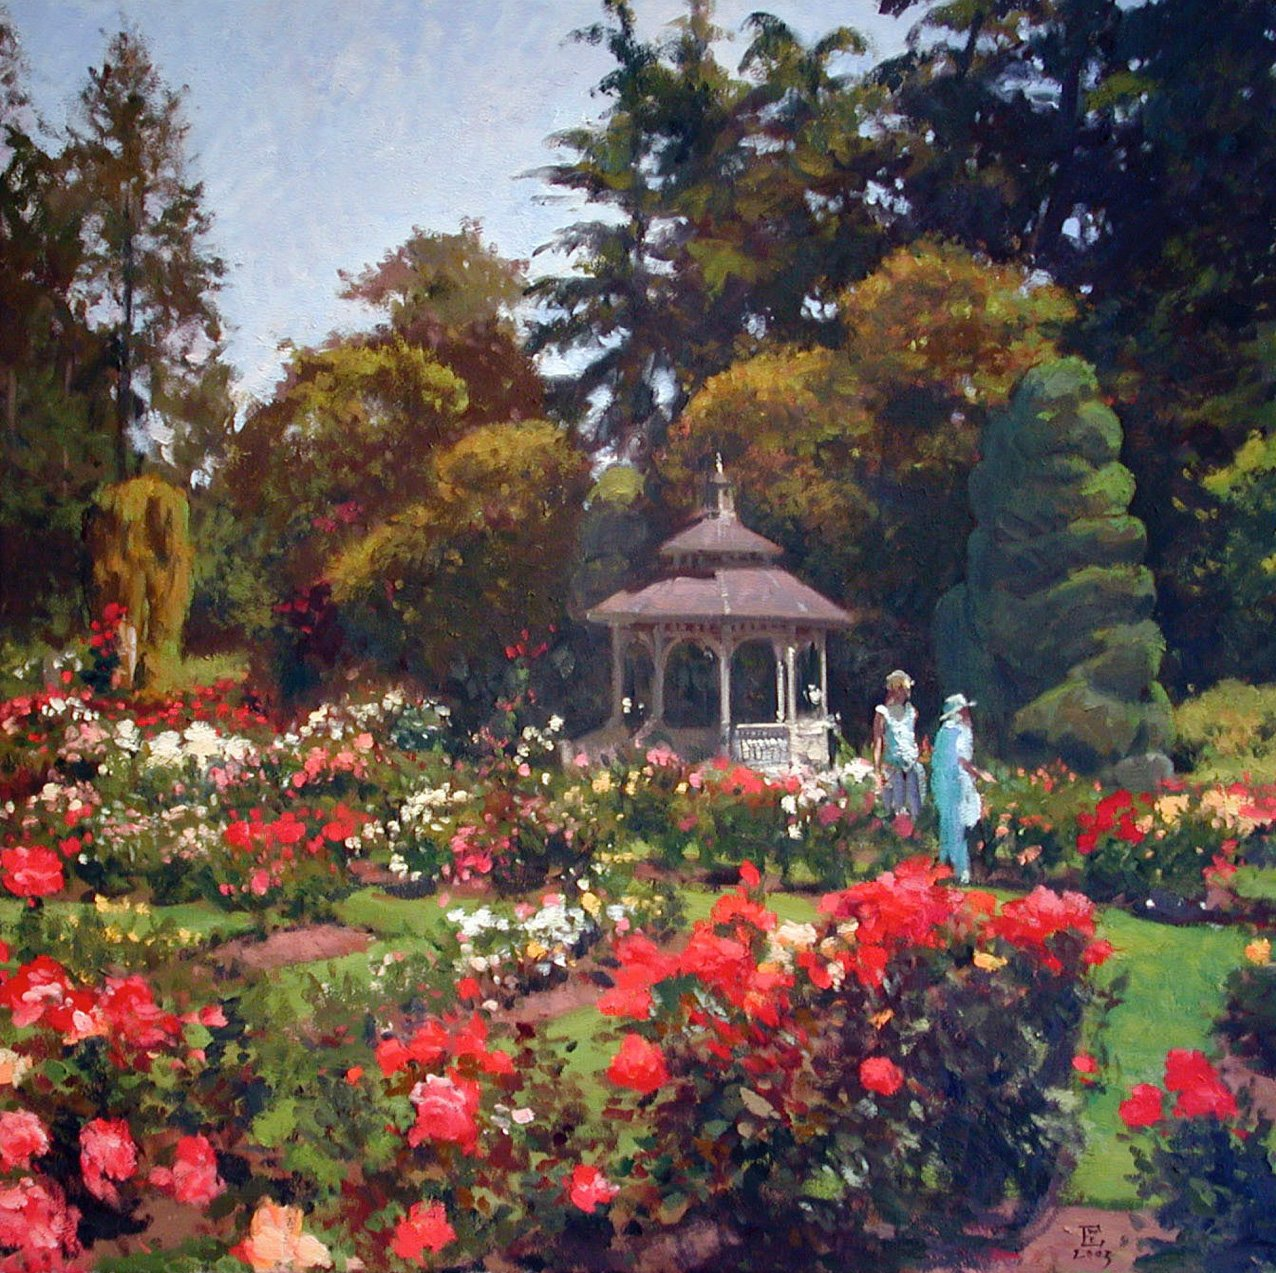 Woodland Park Rose Garden, oil on canvas, 36 x 36 inches, copyright ©2003